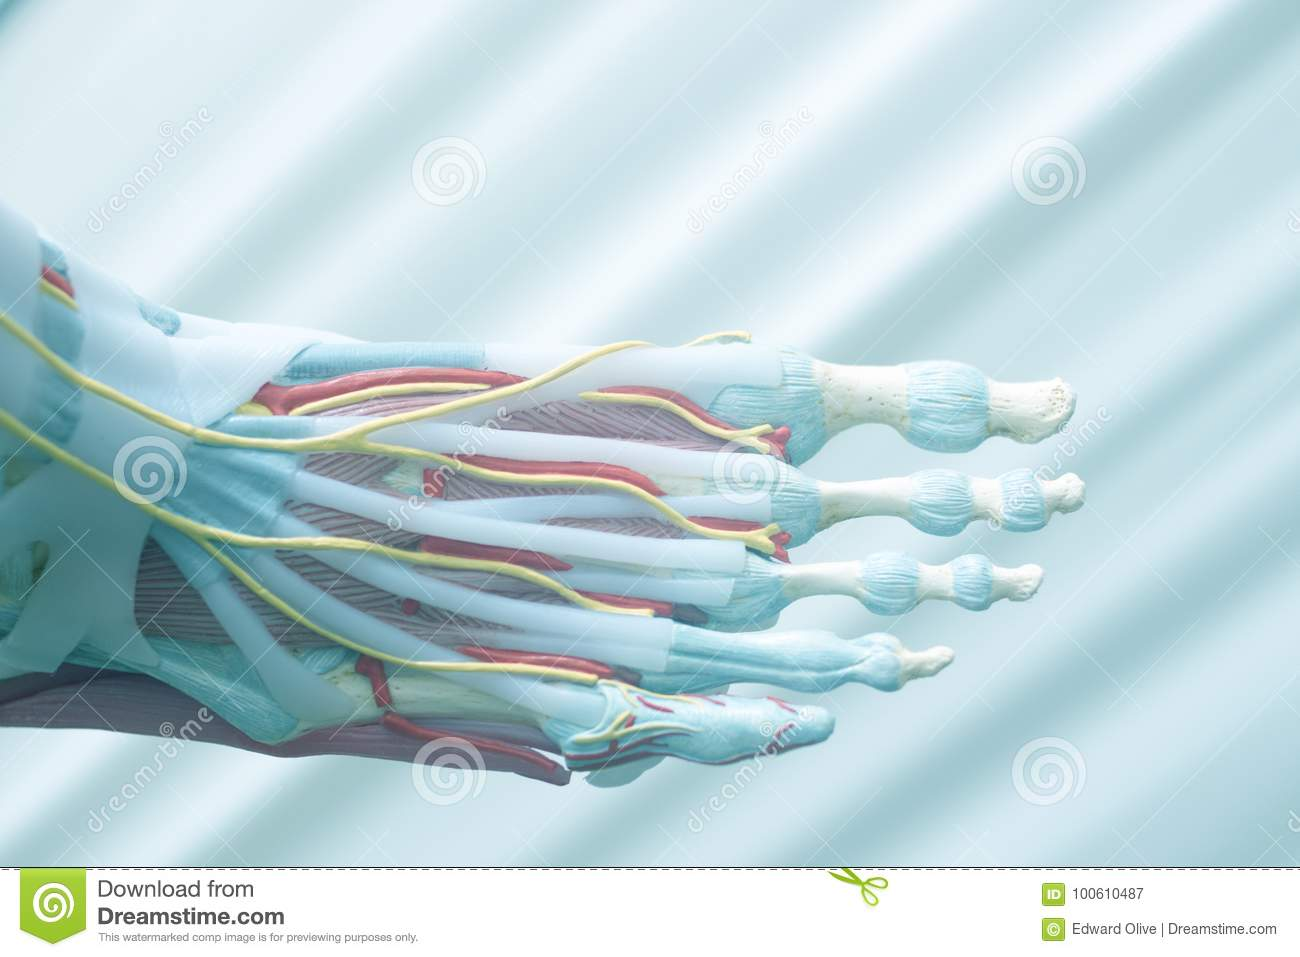 Human Foot Toes Model Stock Image Image Of Human Medicine 100610487